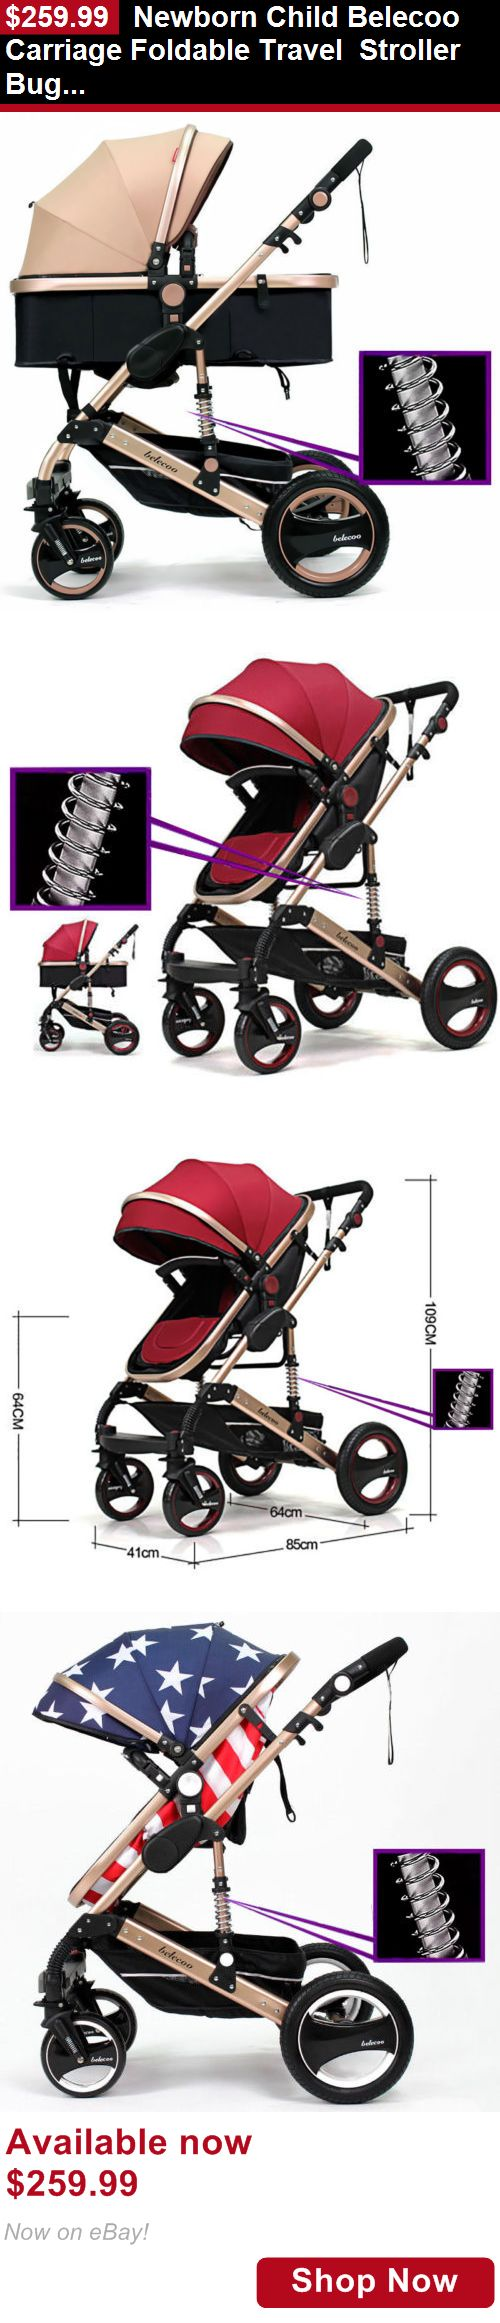 Strollers: Newborn Child Belecoo Carriage Foldable Travel Stroller Buggy Pushchair Pram BUY IT NOW ONLY: $259.99